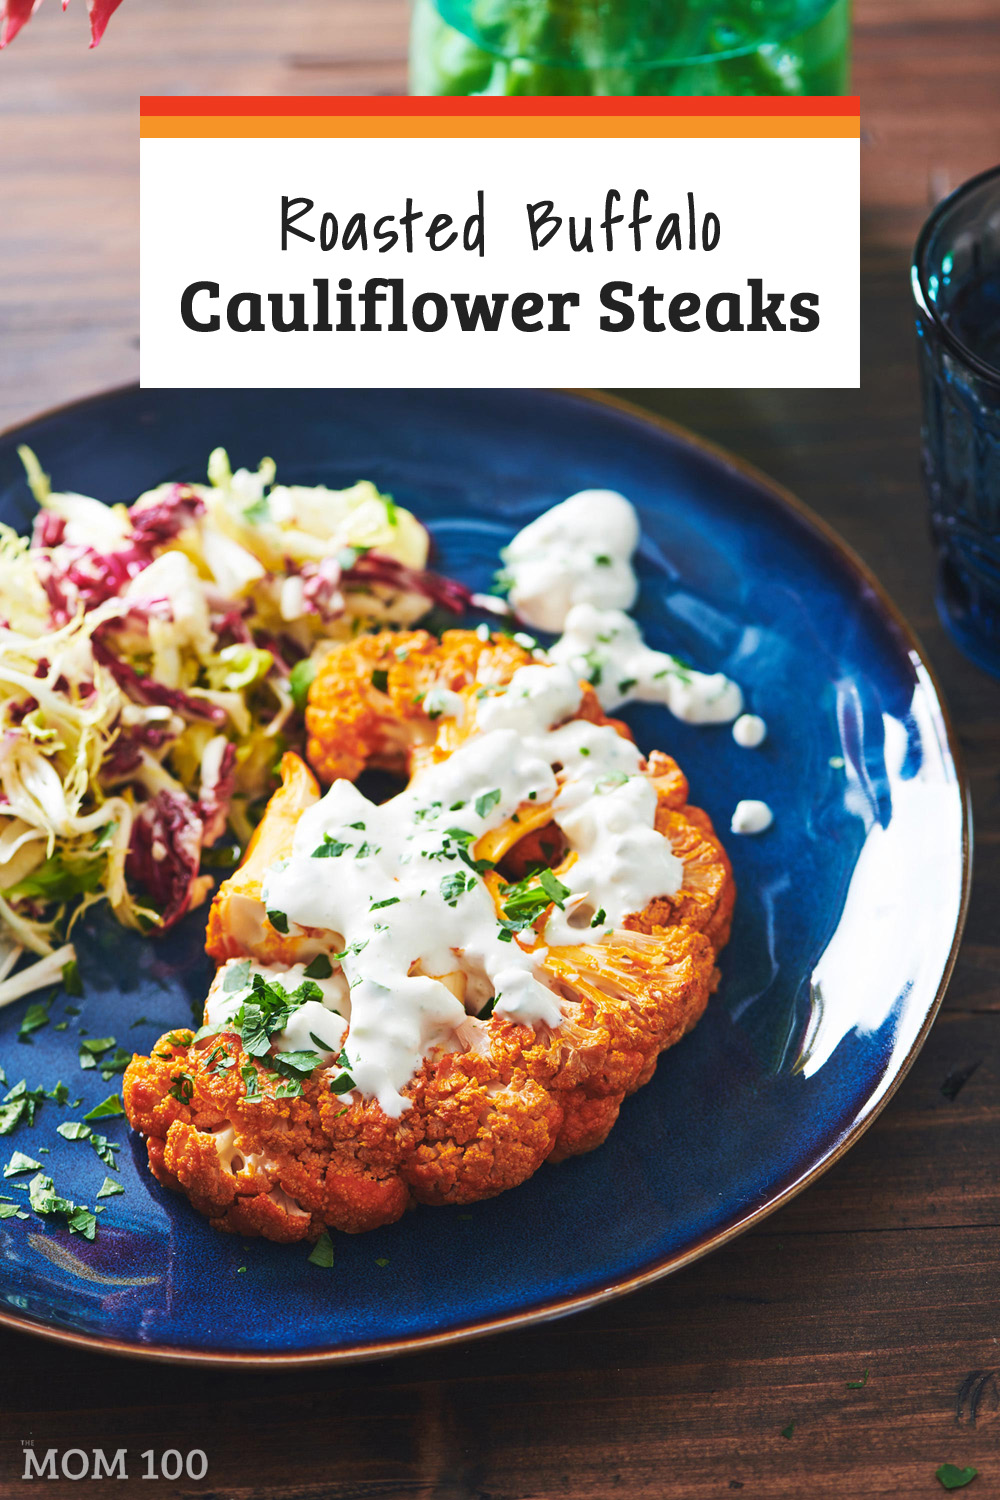 Roasted Buffalo Cauliflower Steaks: Trendy steaks are so easy to make at home. They are satisfying and hearty, and the way the edges caramelize is pure deliciousness.  If you love chicken wings, but can\'t justify them as part of the regular rotation OR if you\'re a vegetarian missing buffalo wings, this is for you.